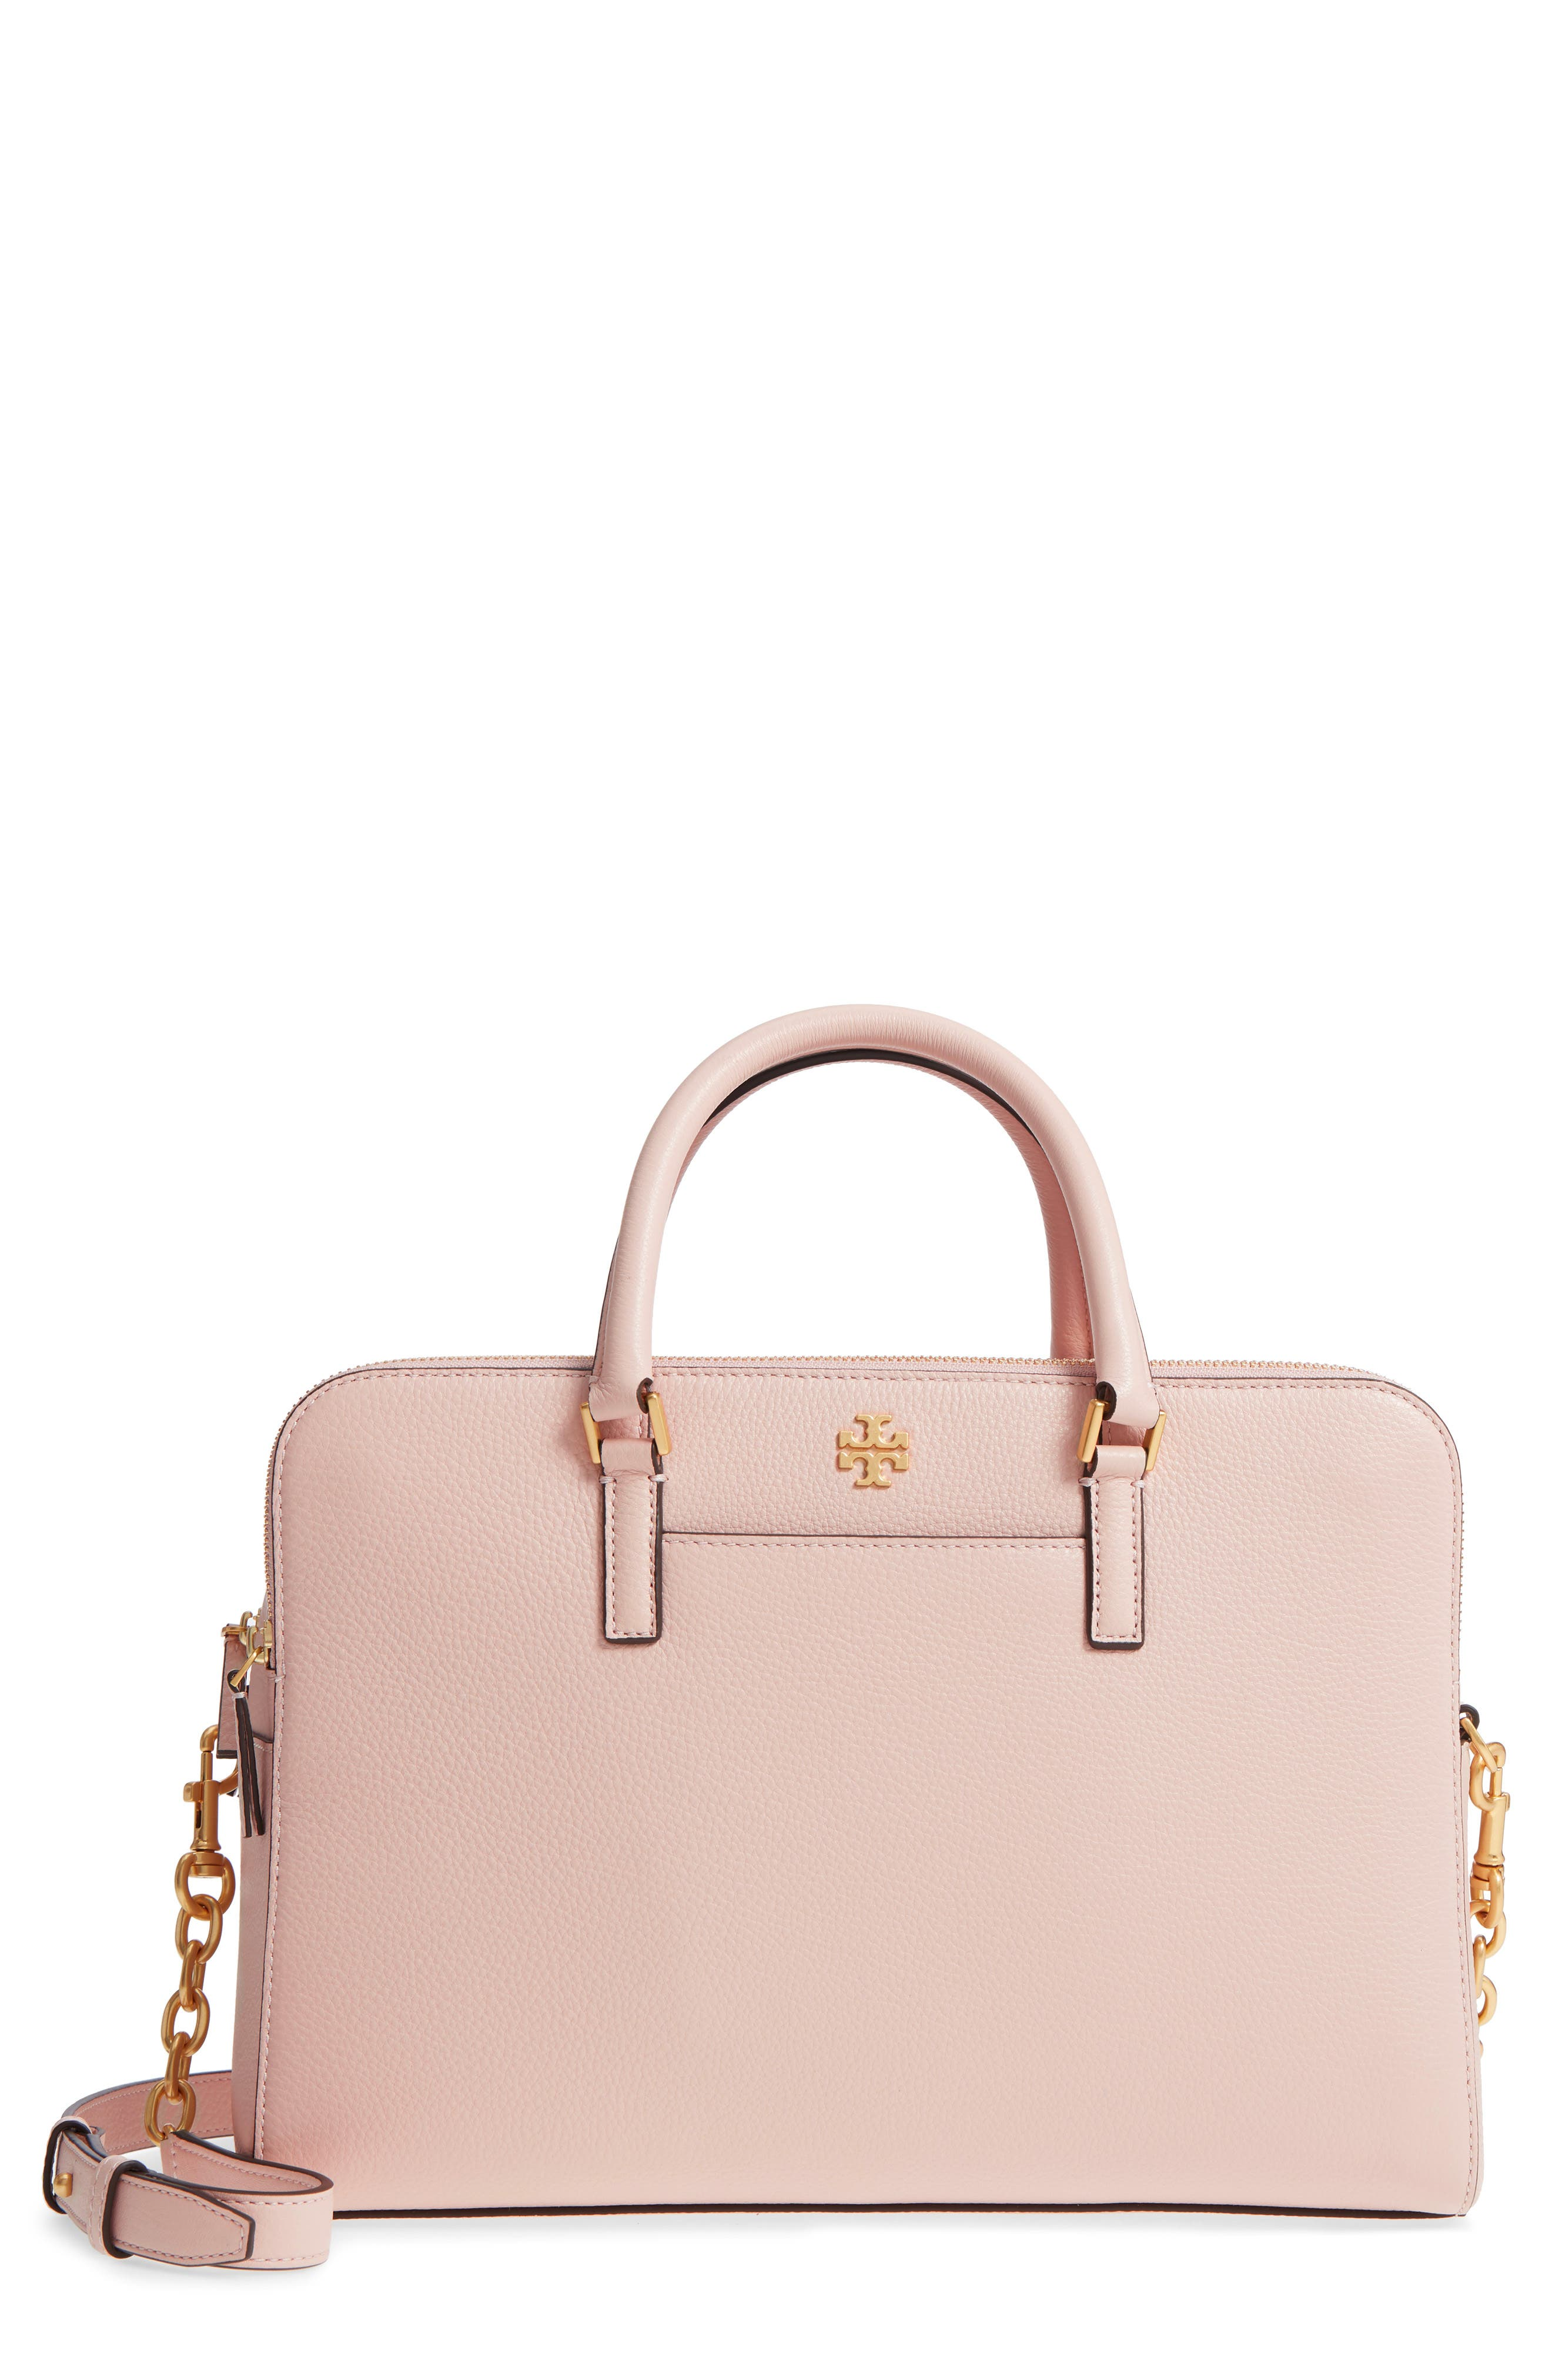 Georgia Double Zip Pebbled Leather Satchel,                             Main thumbnail 1, color,                             Shell Pink